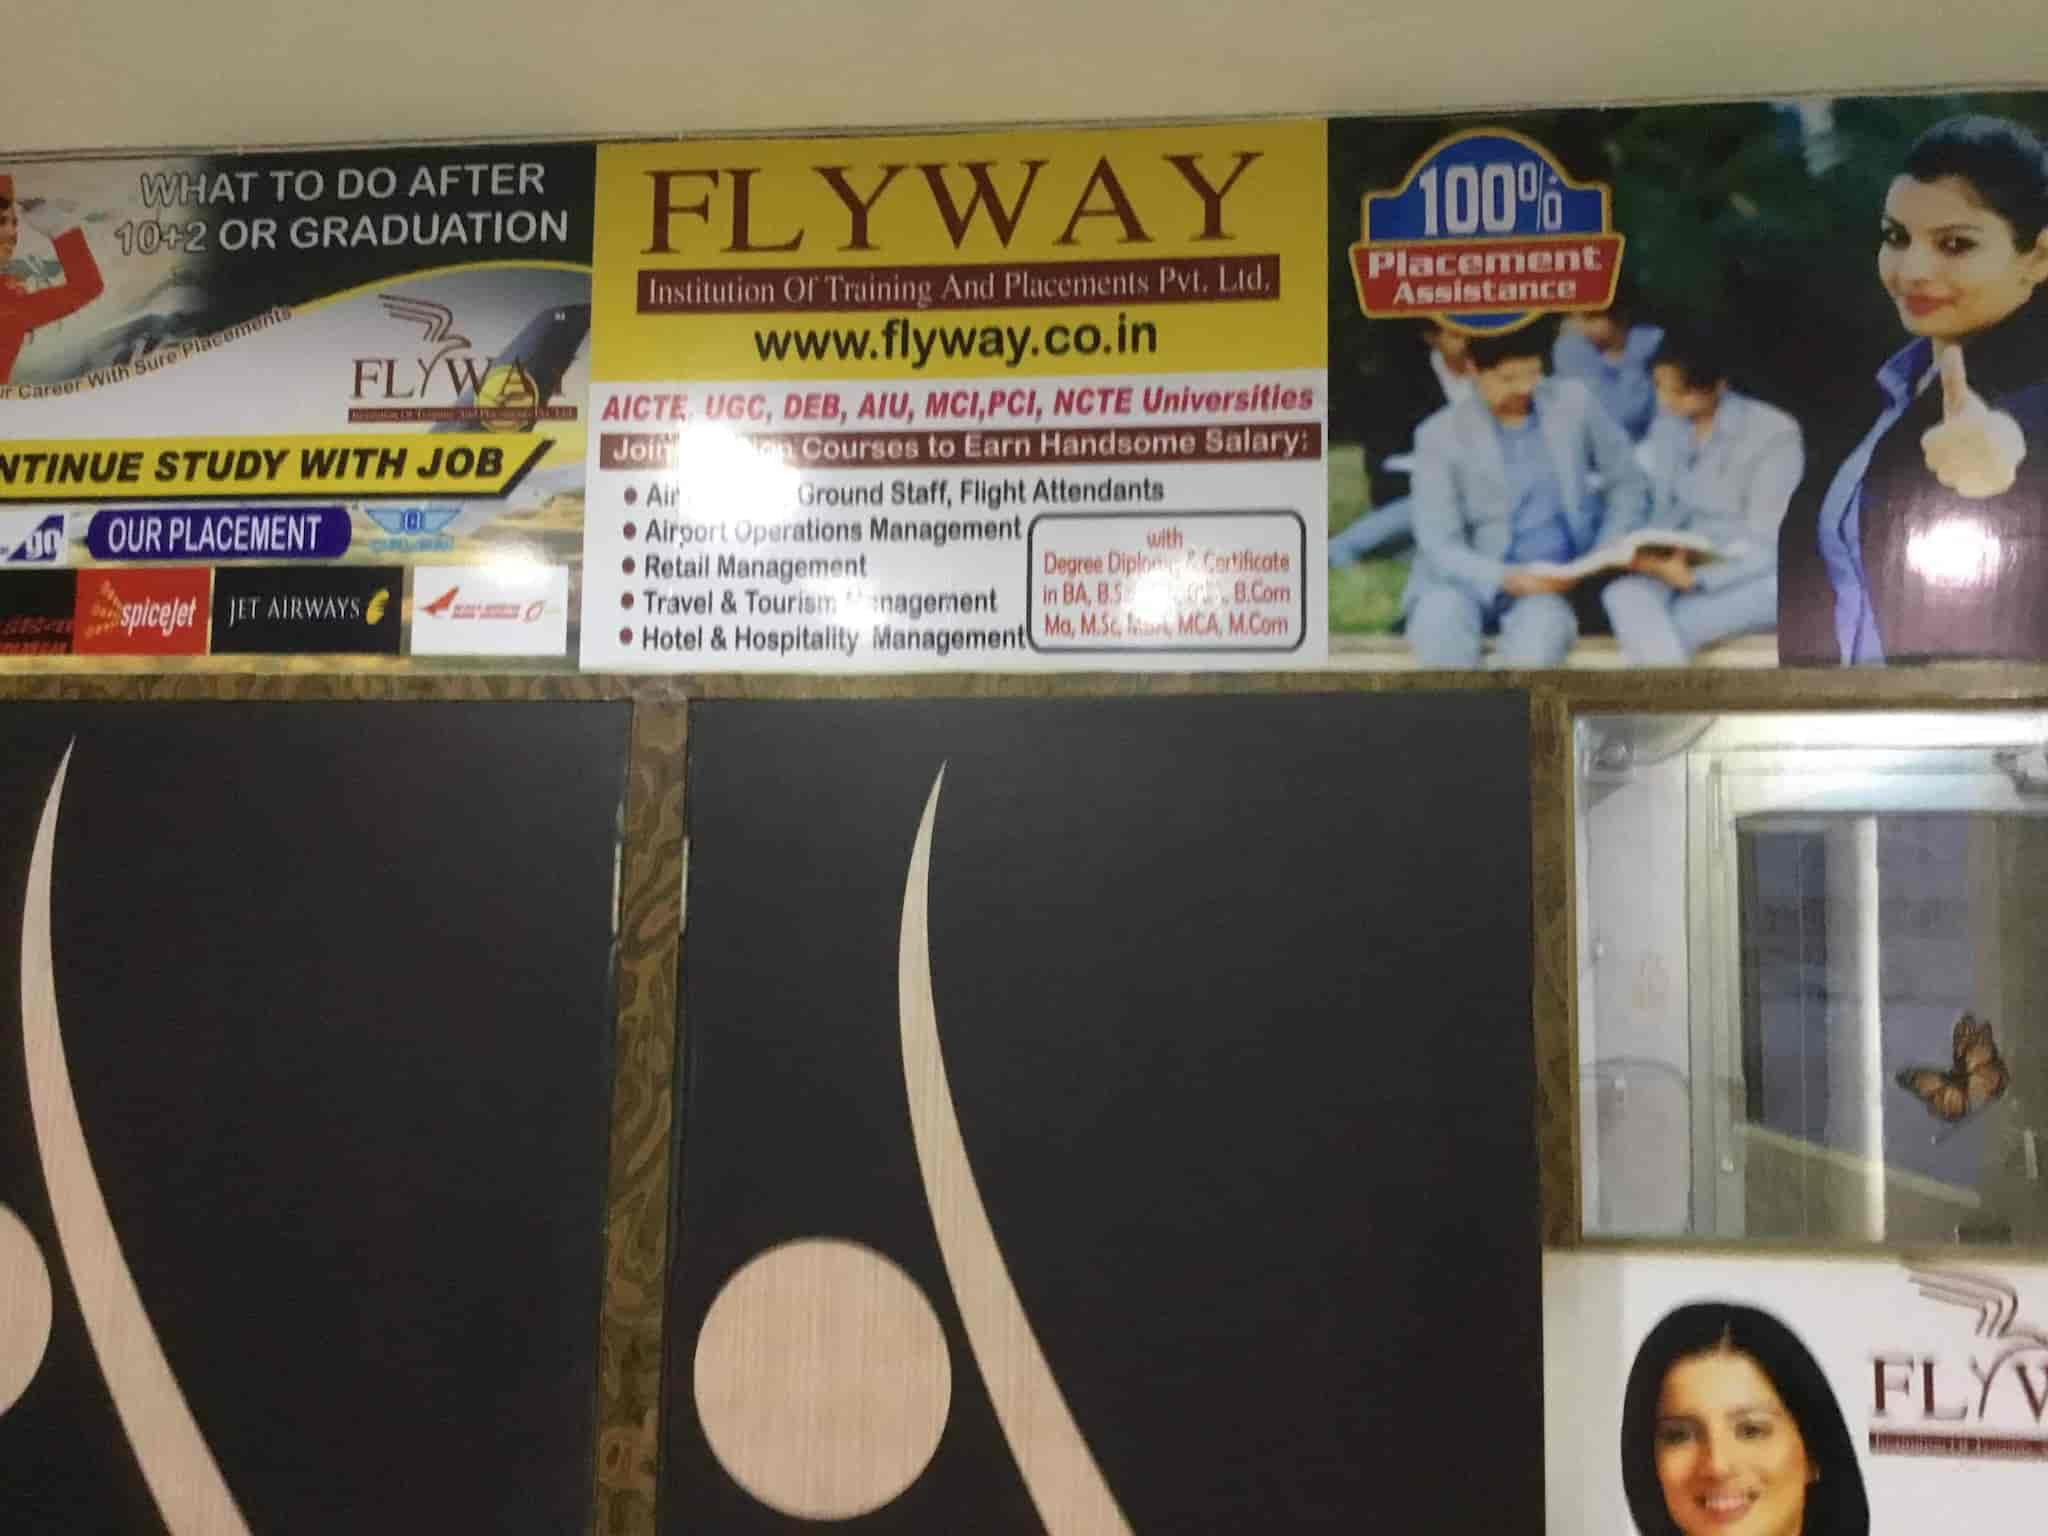 Flyway Institution Centre For Distance Learning, Alambagh